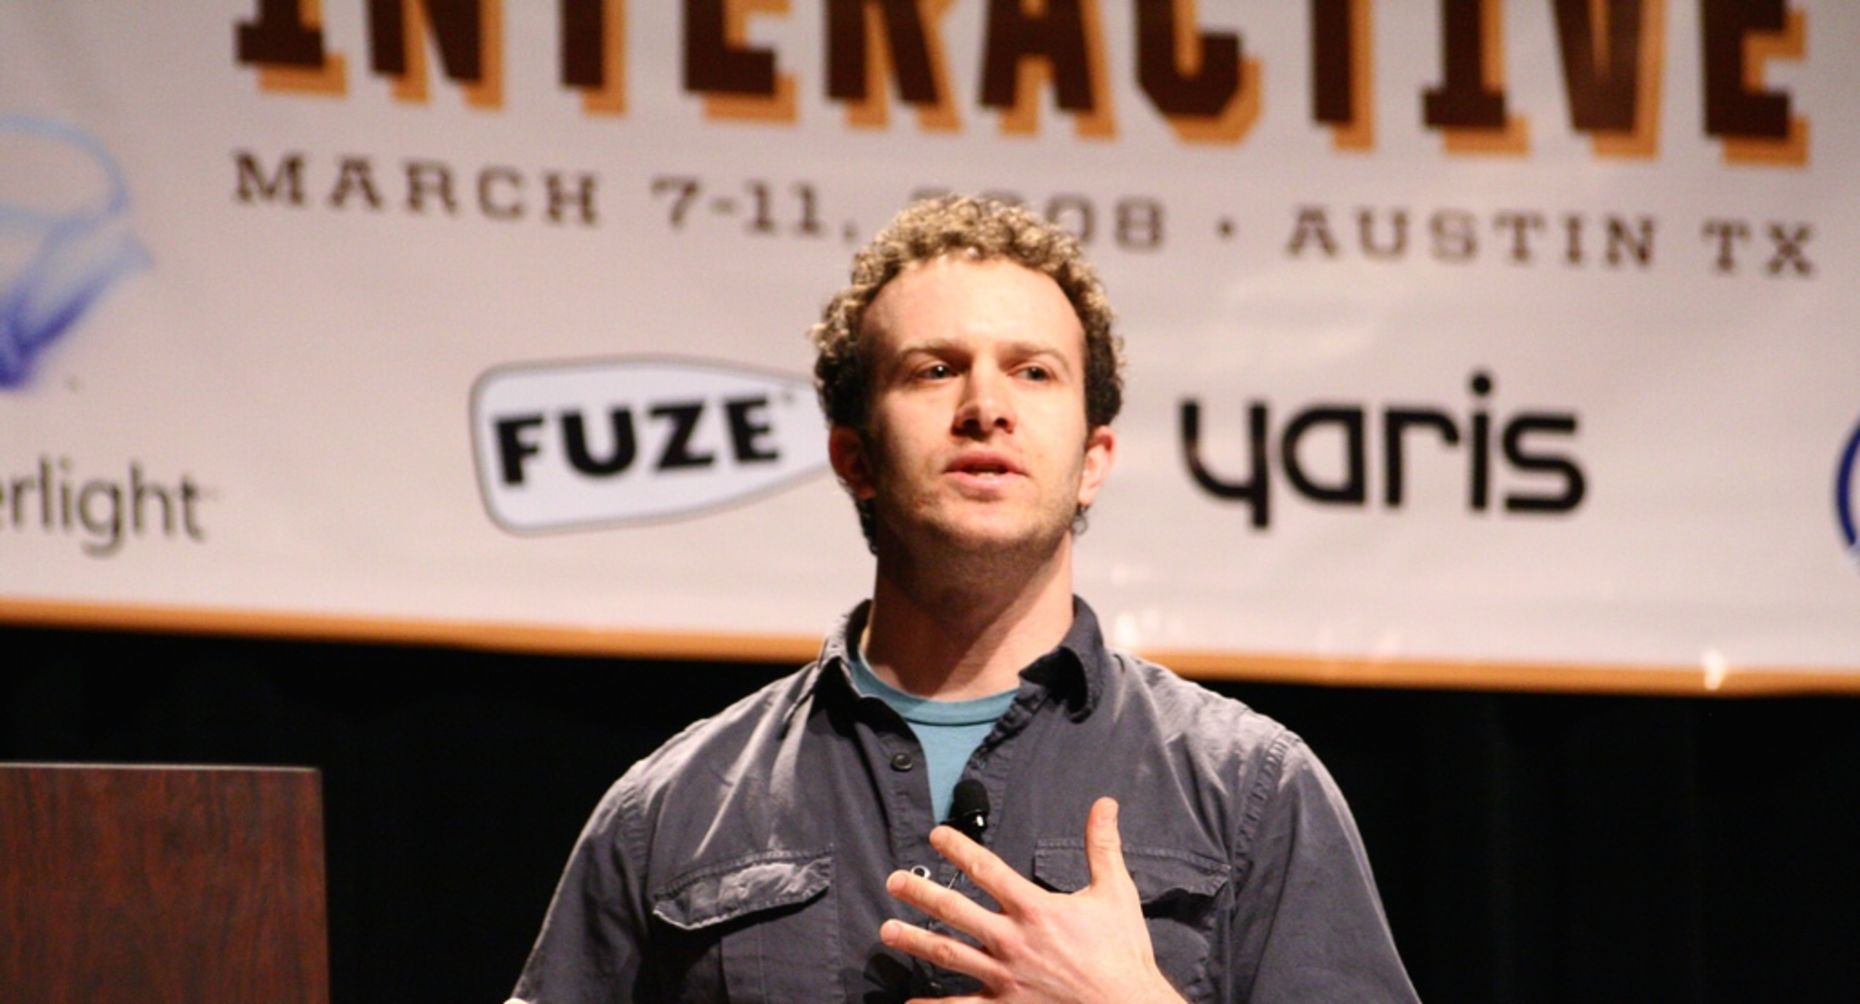 Jason Fried, CEO of Basecamp. Photo by Jason McELweenie.